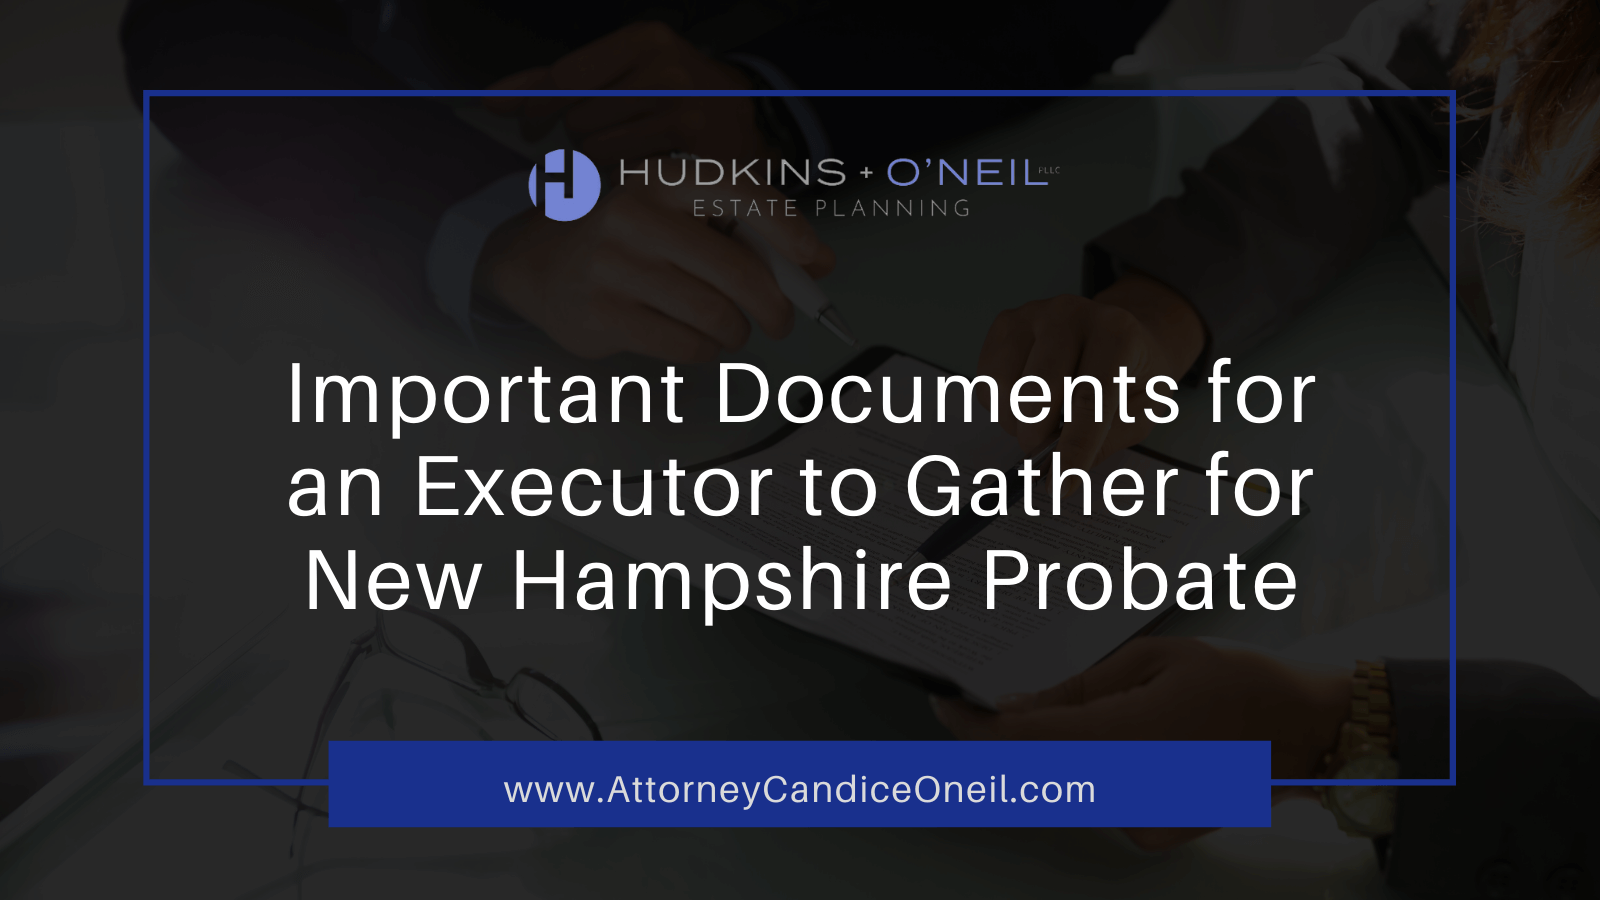 Important Documents to Gather for New Hampshire Probate